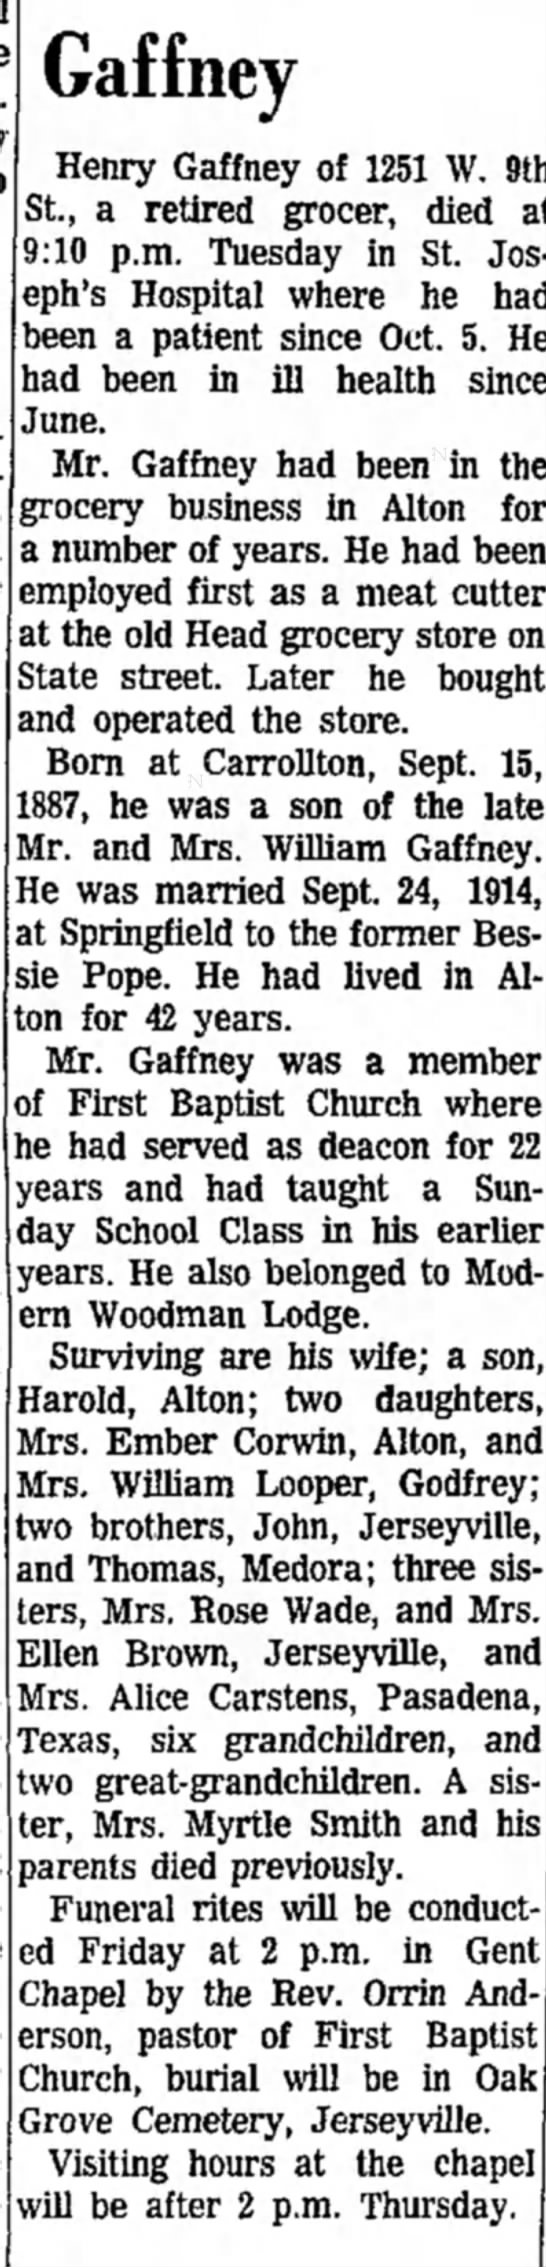 Henry Gaffney obit; Alton Evening Telegraph, Wed, Oct 16, 1963, p 22 -